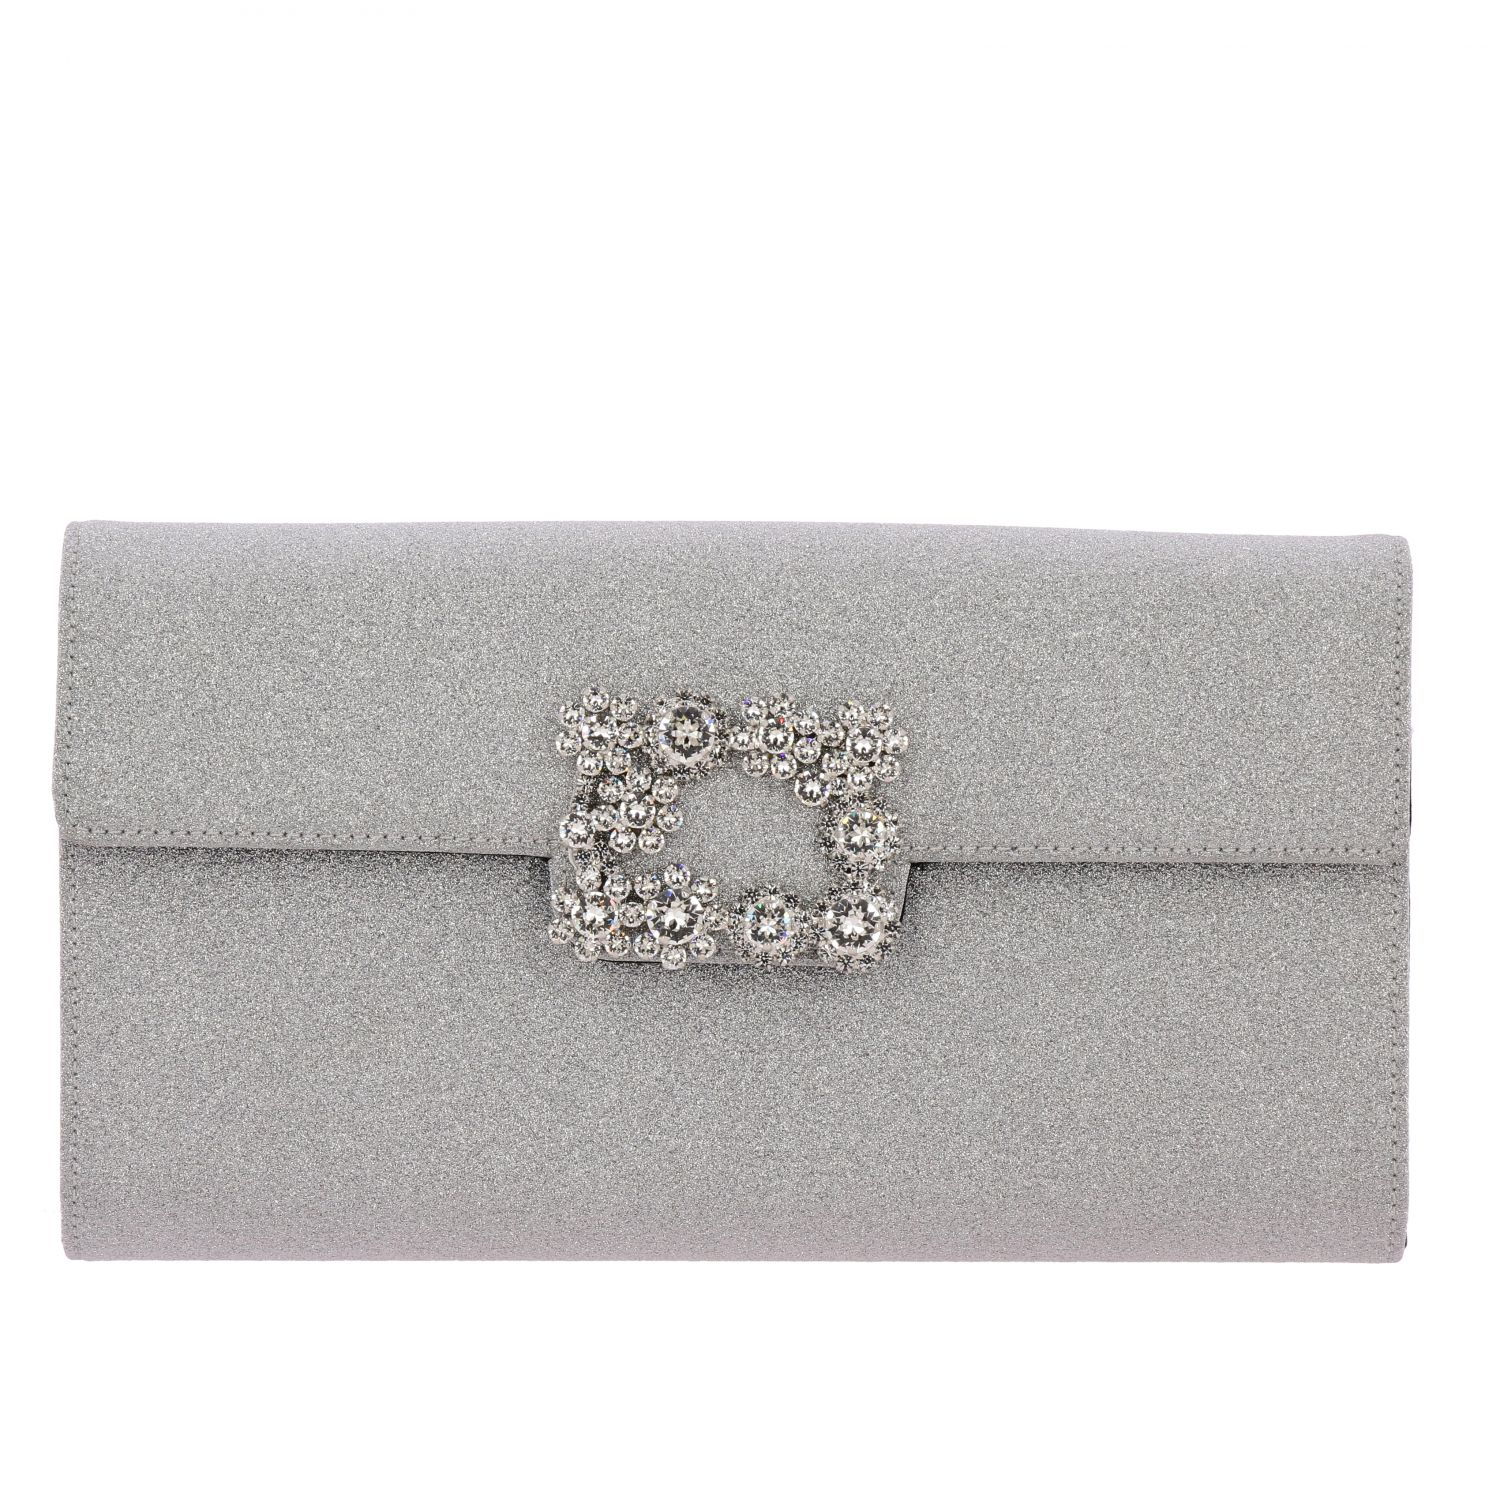 Roger Vivier Envelope Flap Flower Buckle 水钻扣亮片面料手包 银色 1